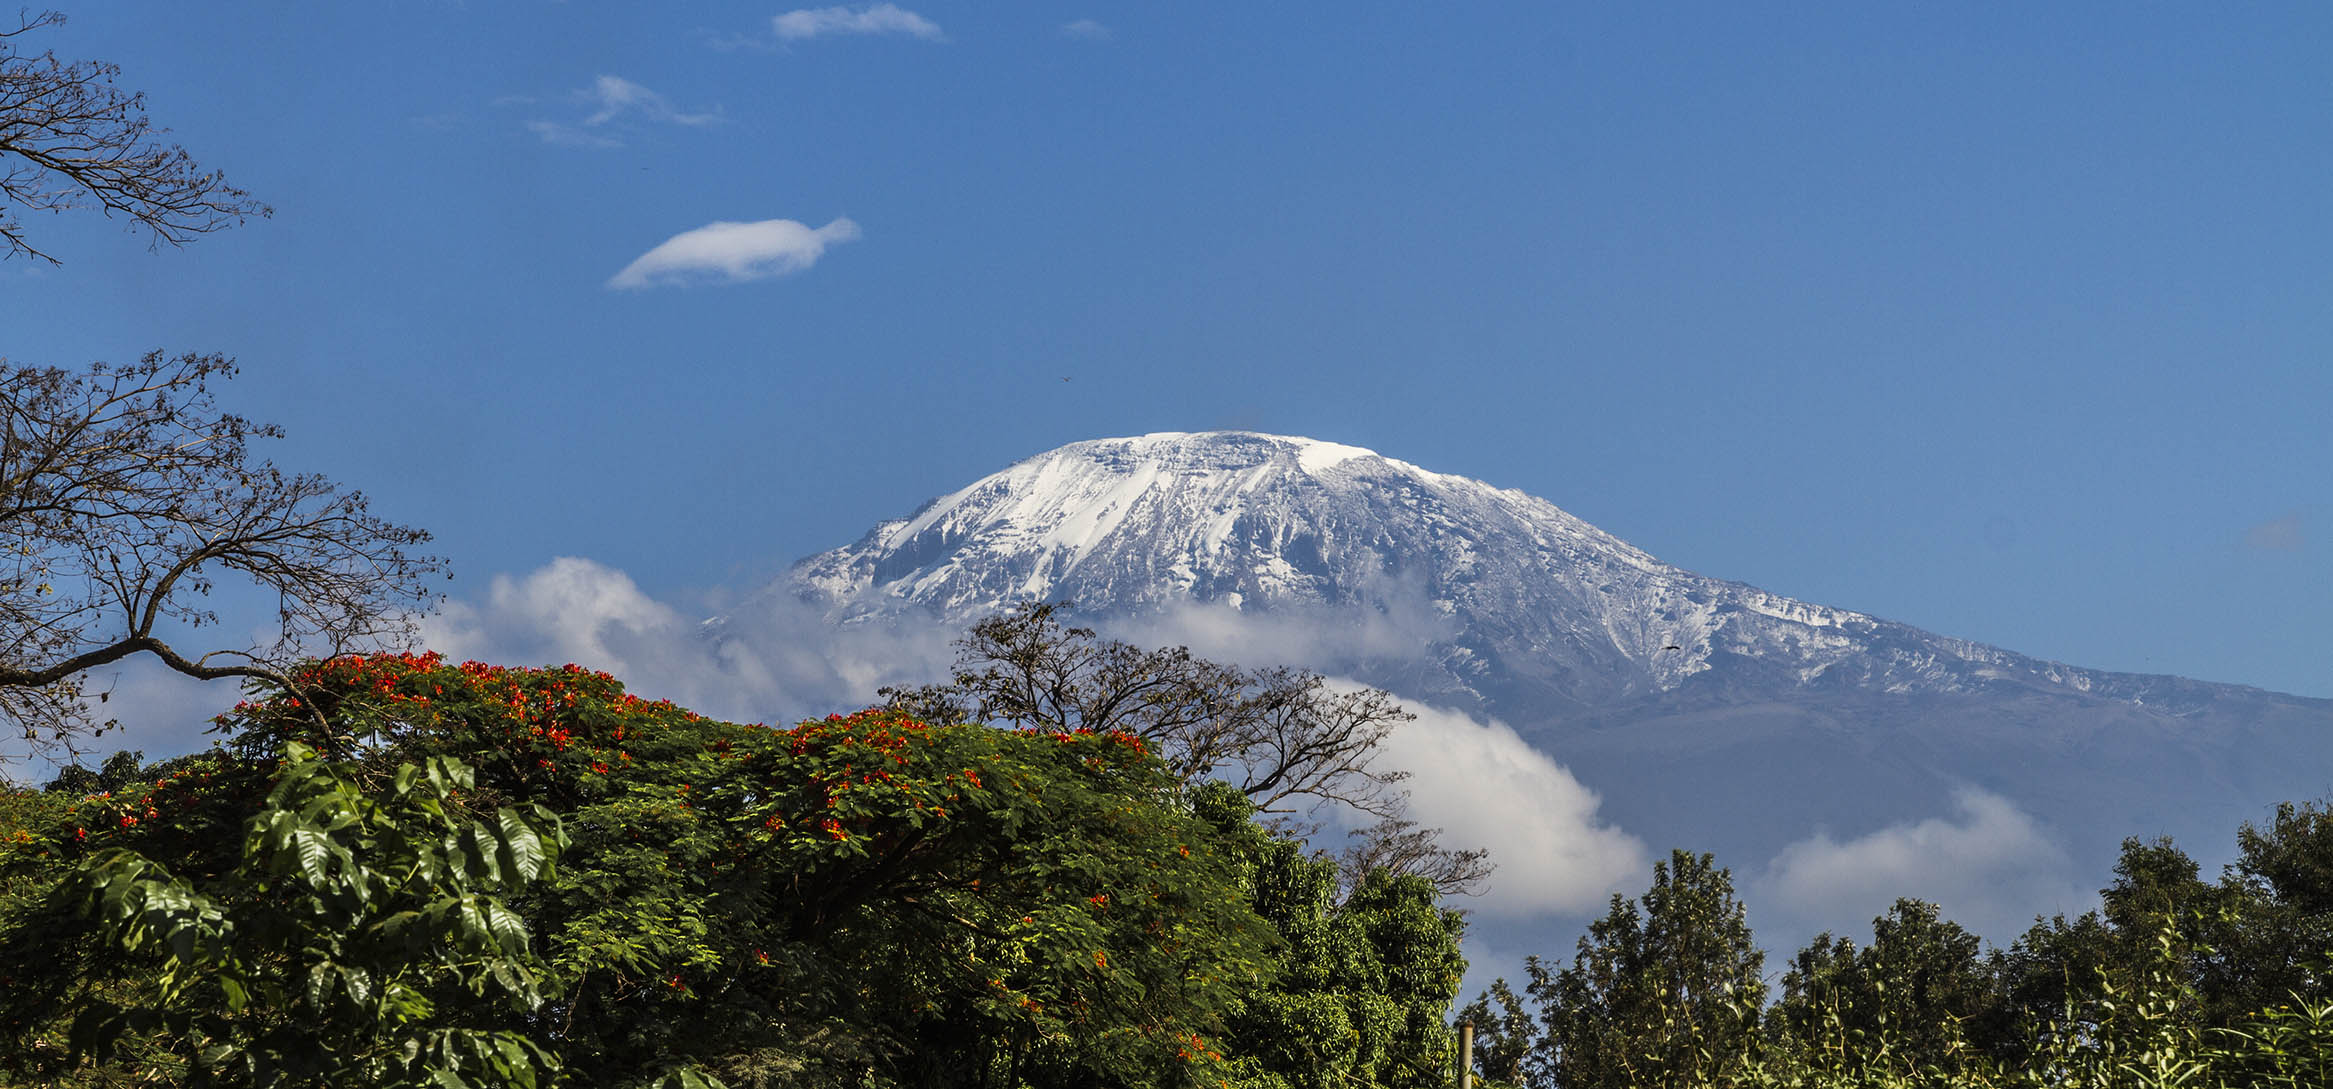 Mount Kilimanjaro, Tanzania.  A rare glimpse of the peak uncovered by clouds.